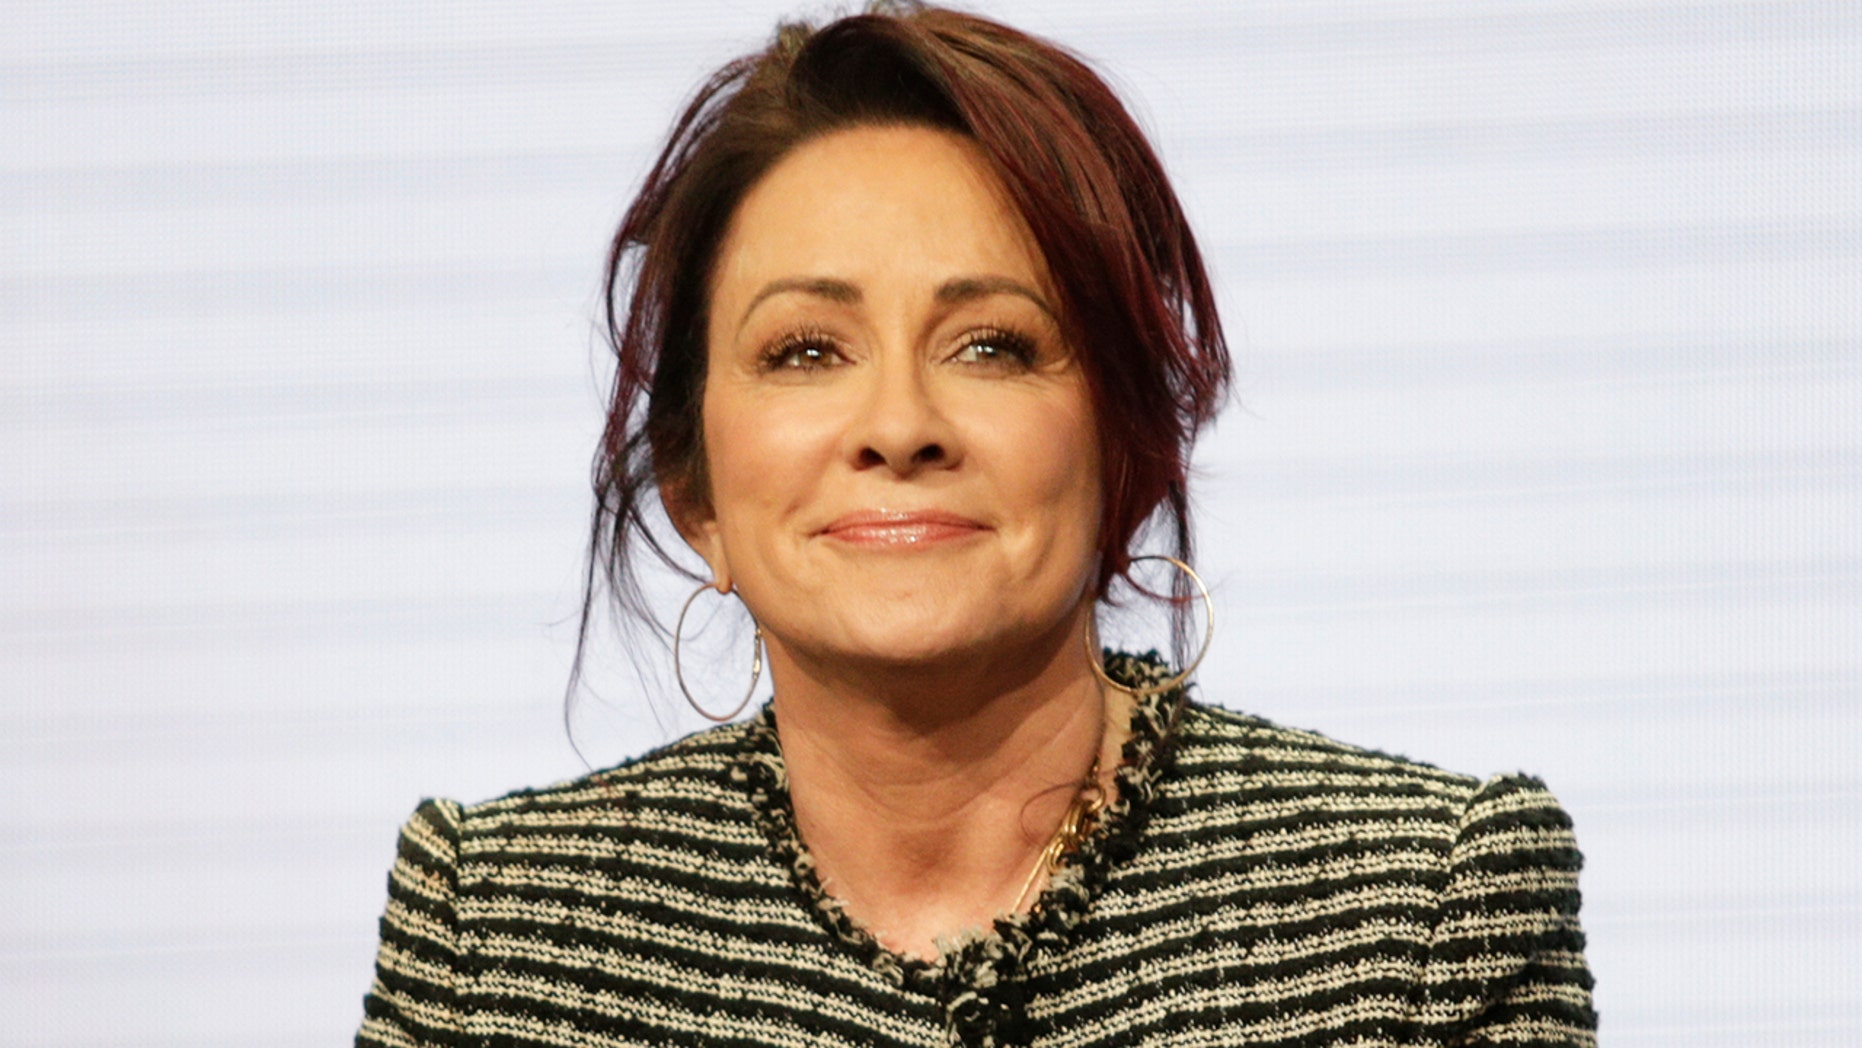 Patricia Heaton warned her followers about an